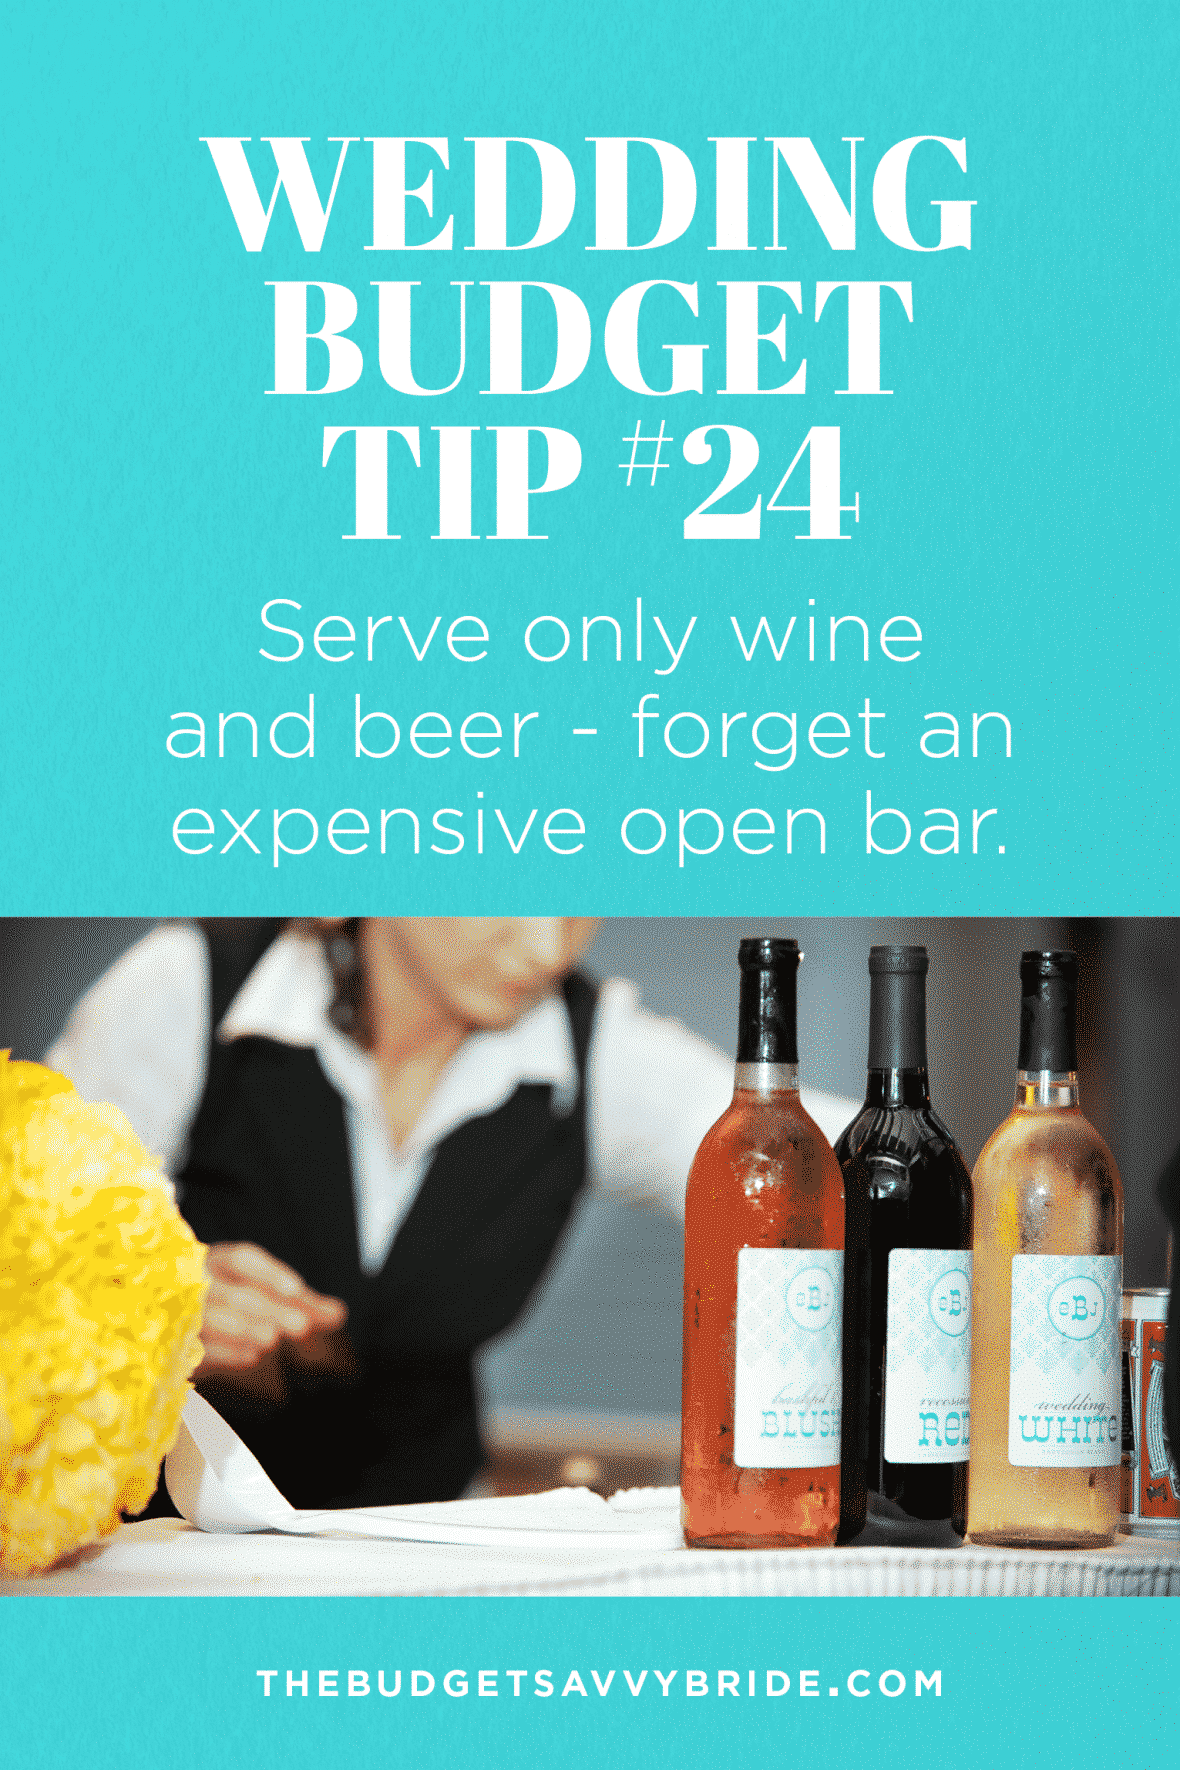 Do yourself and your budget a big favor and opt for only wine and beer. Skipping the open bar can save you thousands on your wedding booze.